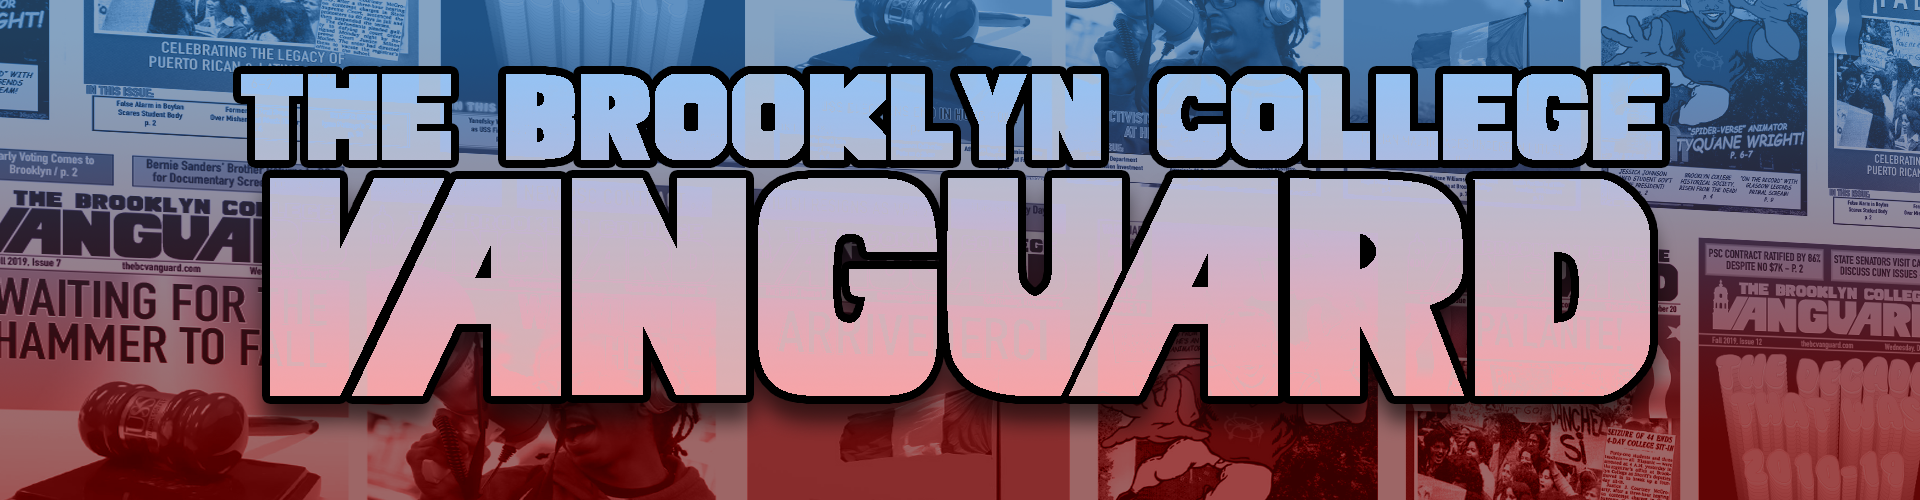 The Brooklyn College Vanguard